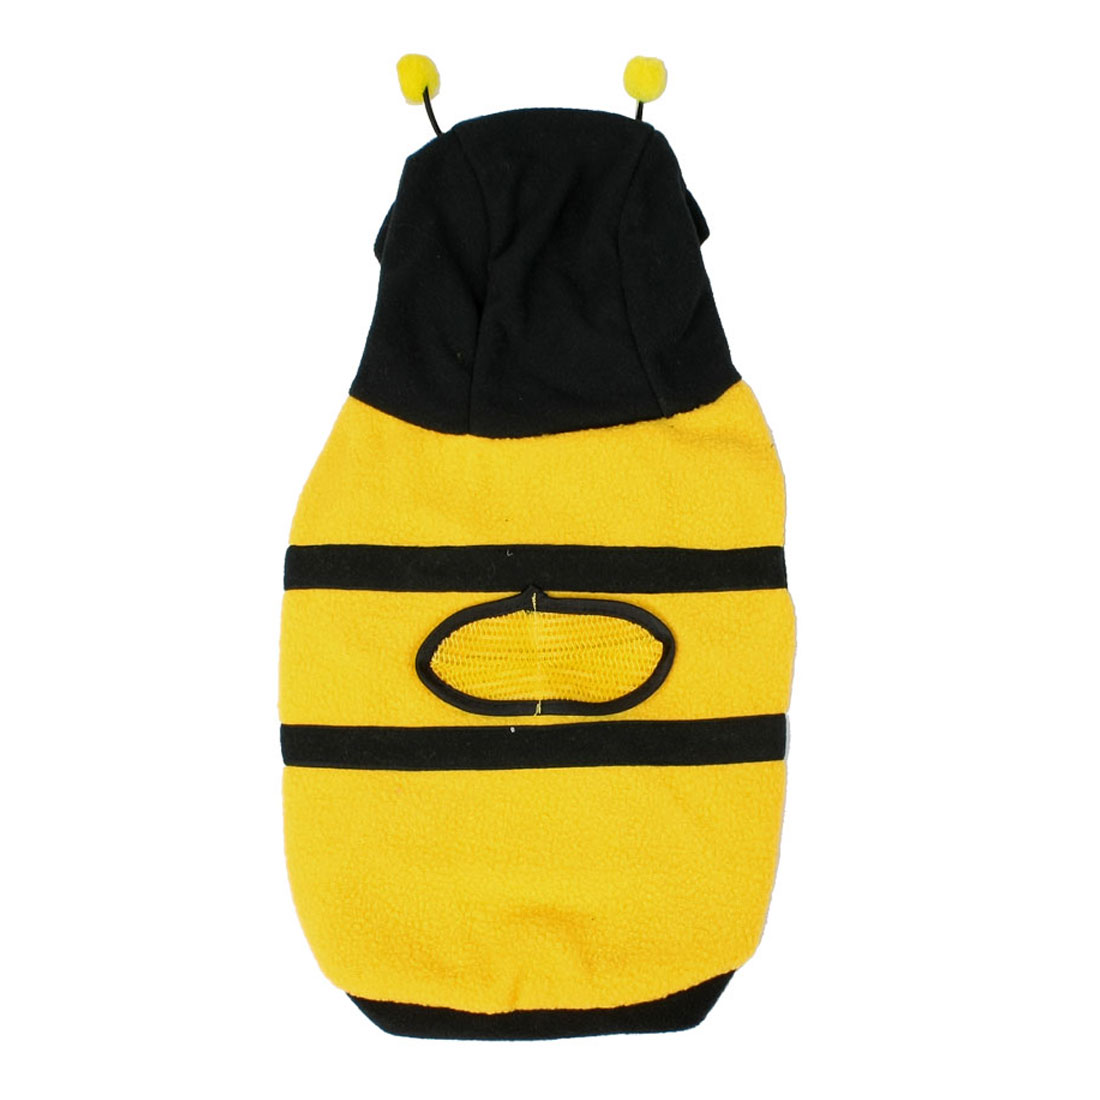 Dress up Costume Bumblebee Bee Yorkie Doogie Dog Coat Clothes Pet Apparel S